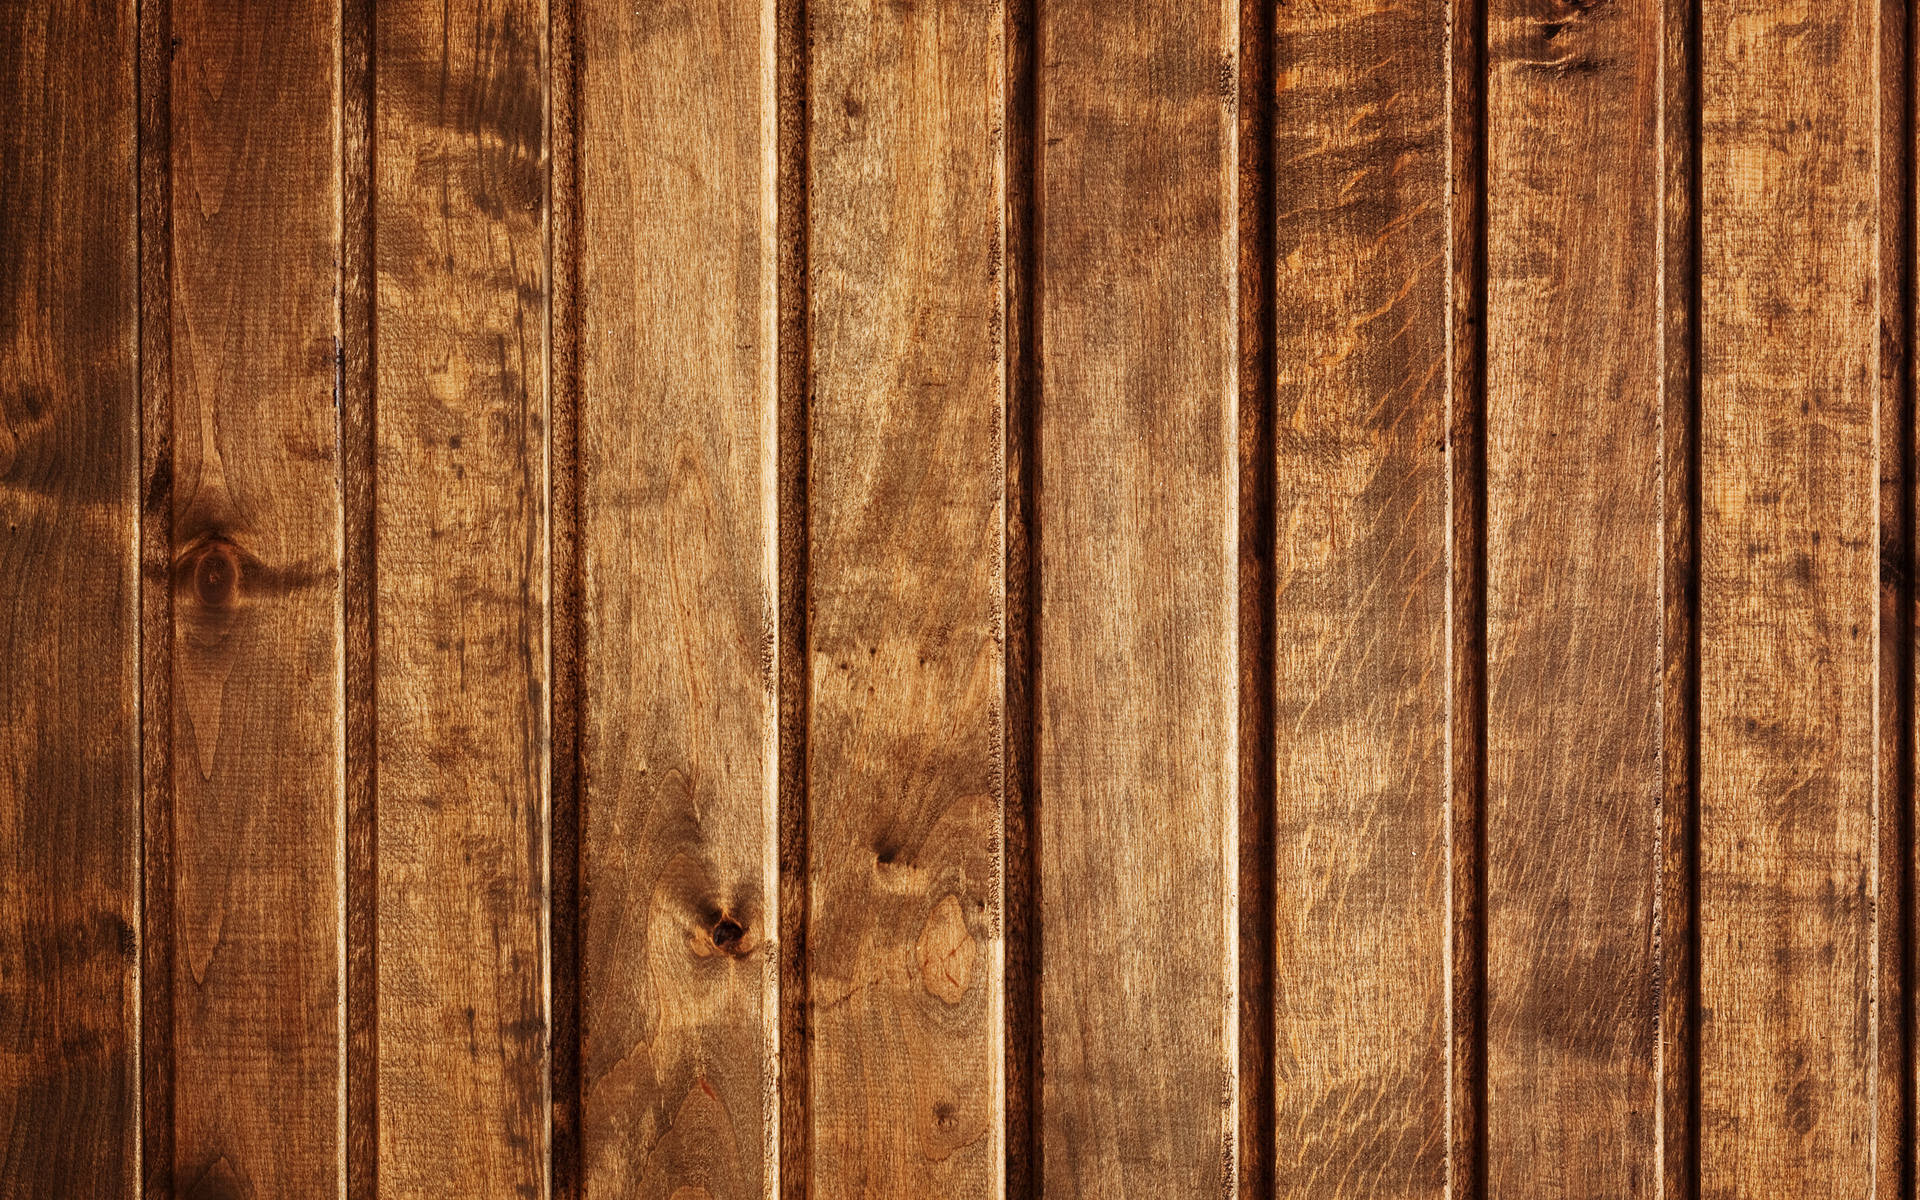 Wood pattern wallpaper 1920x1200 30463 wallpaperup for Planche bois exterieur